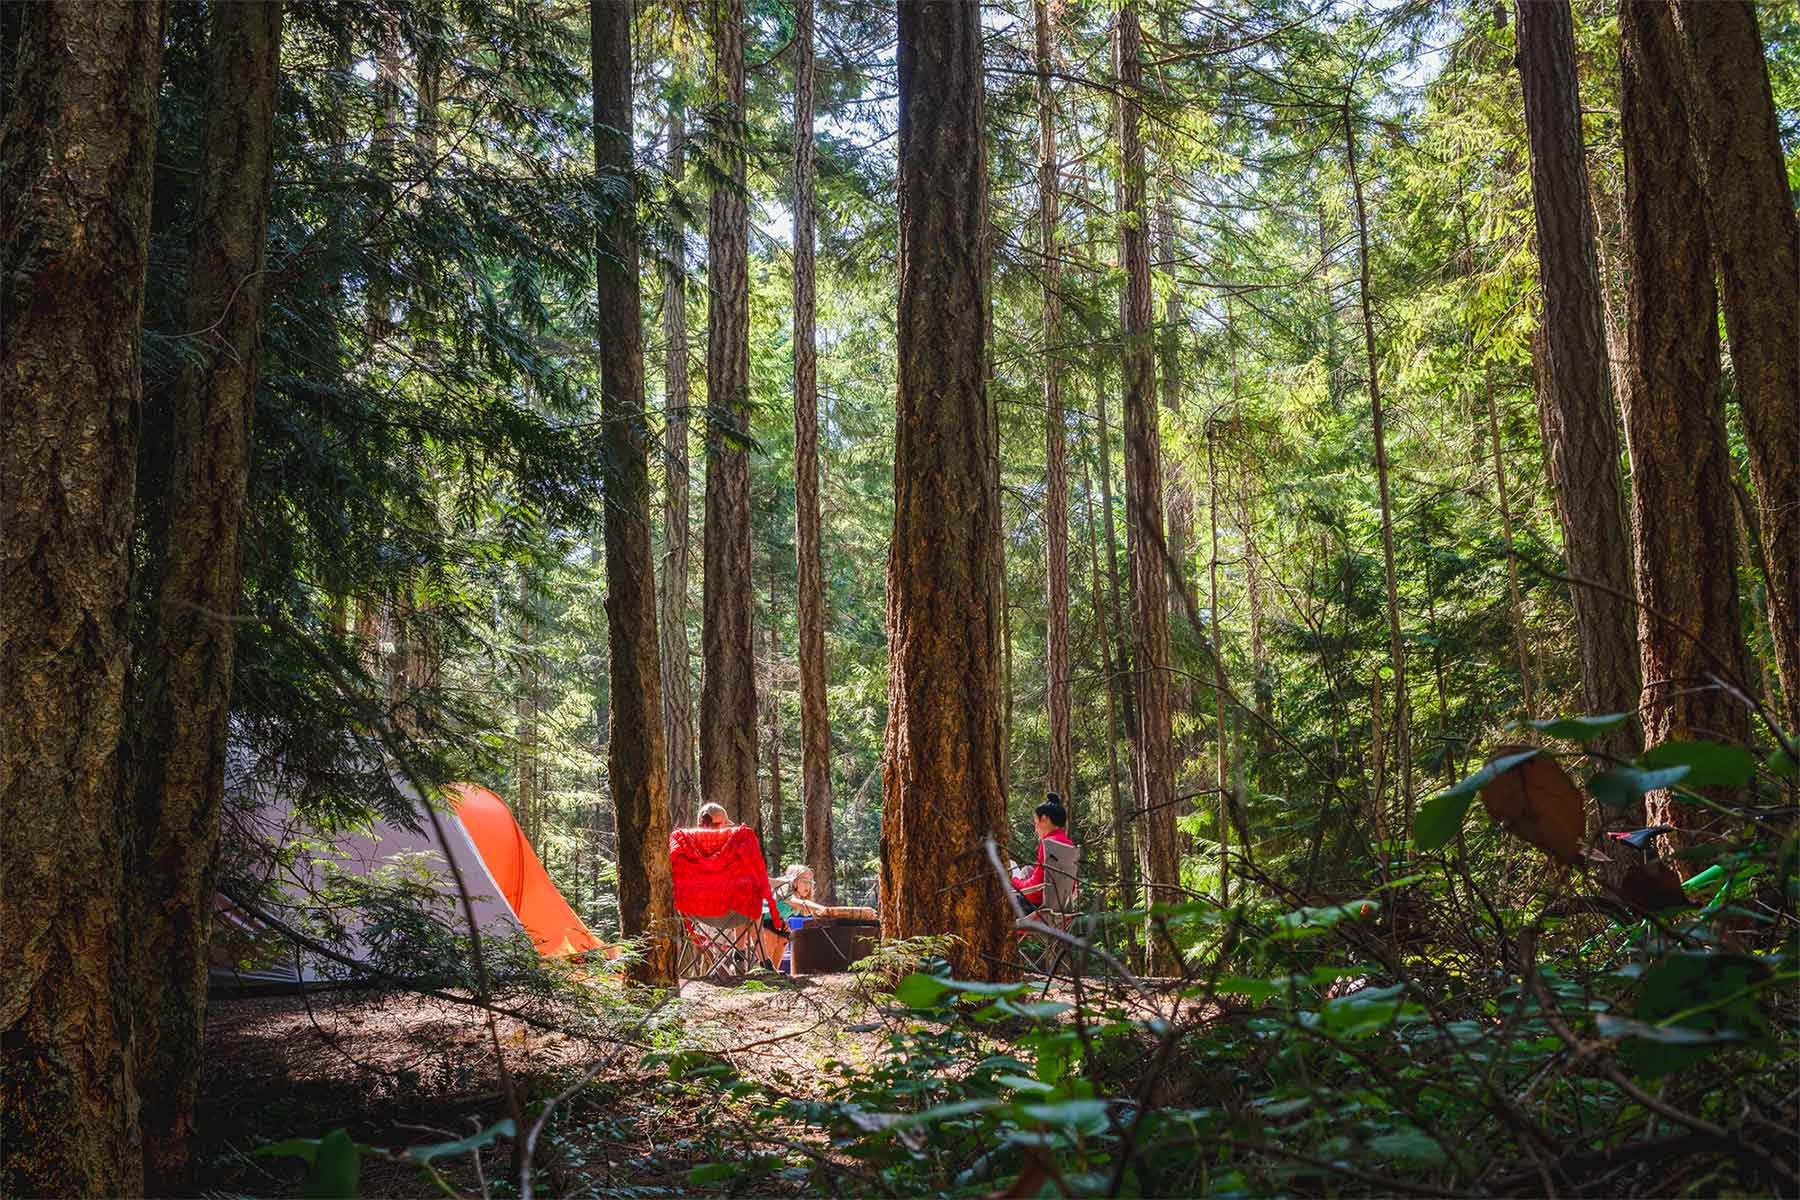 Family camping in the woods